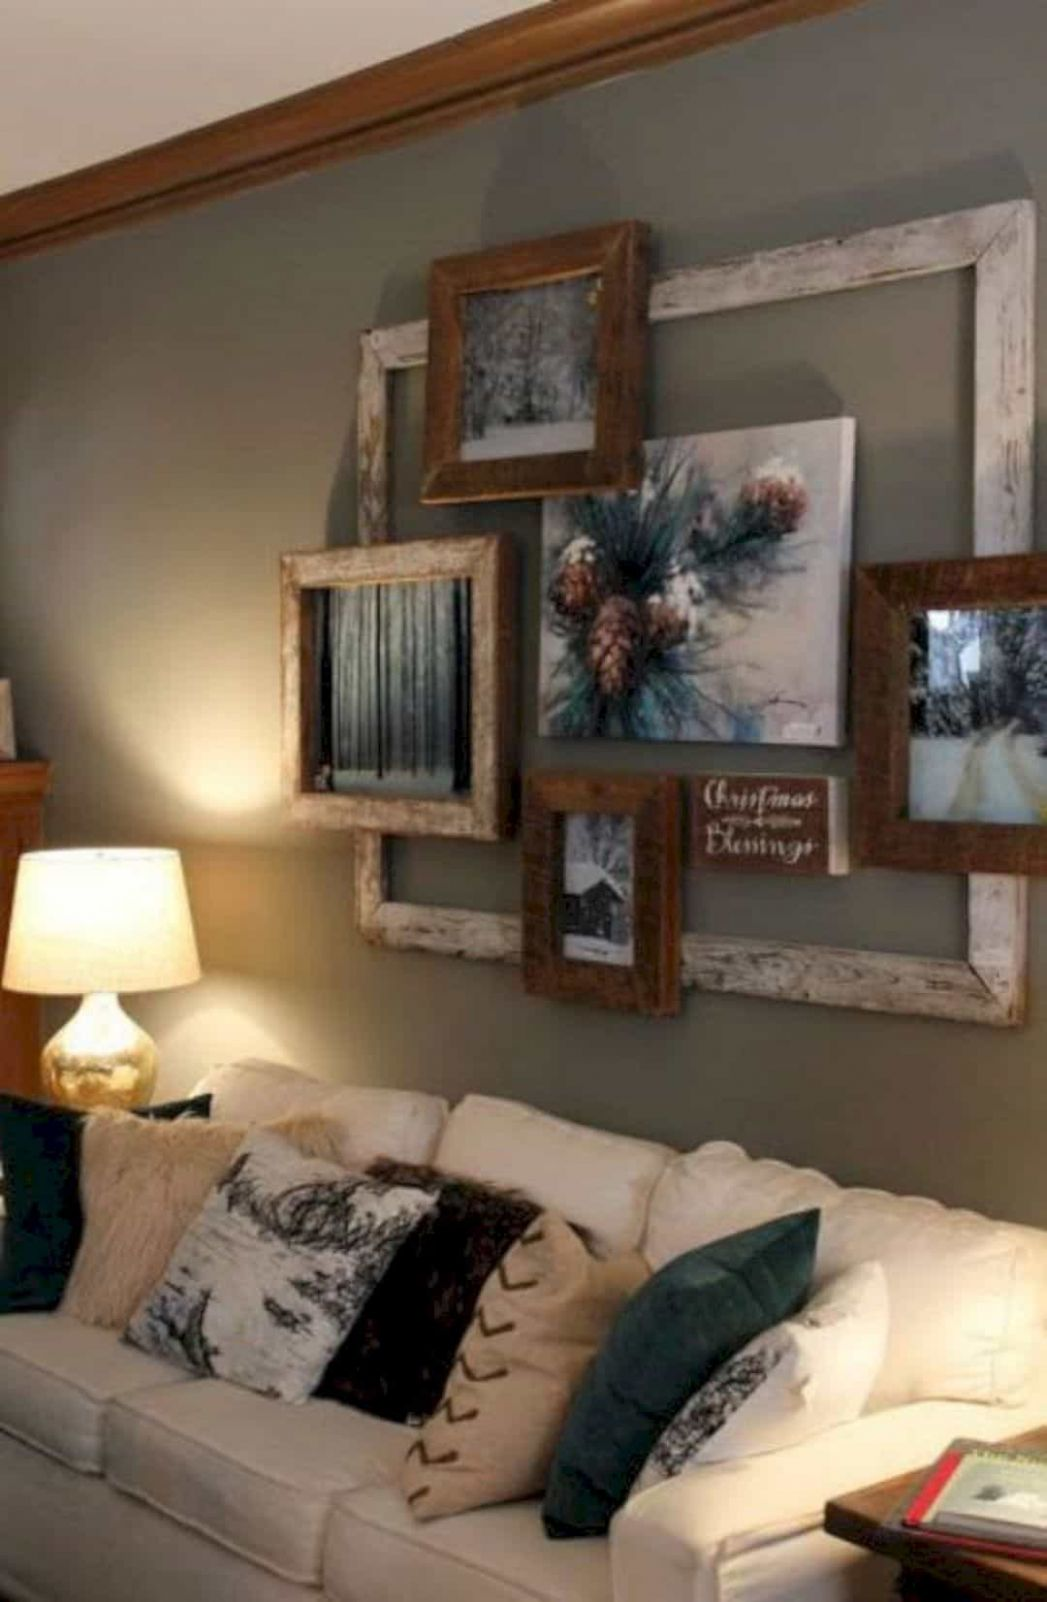 10 DIY Rustic Home Decor Ideas for Living Room - diy home decor living room